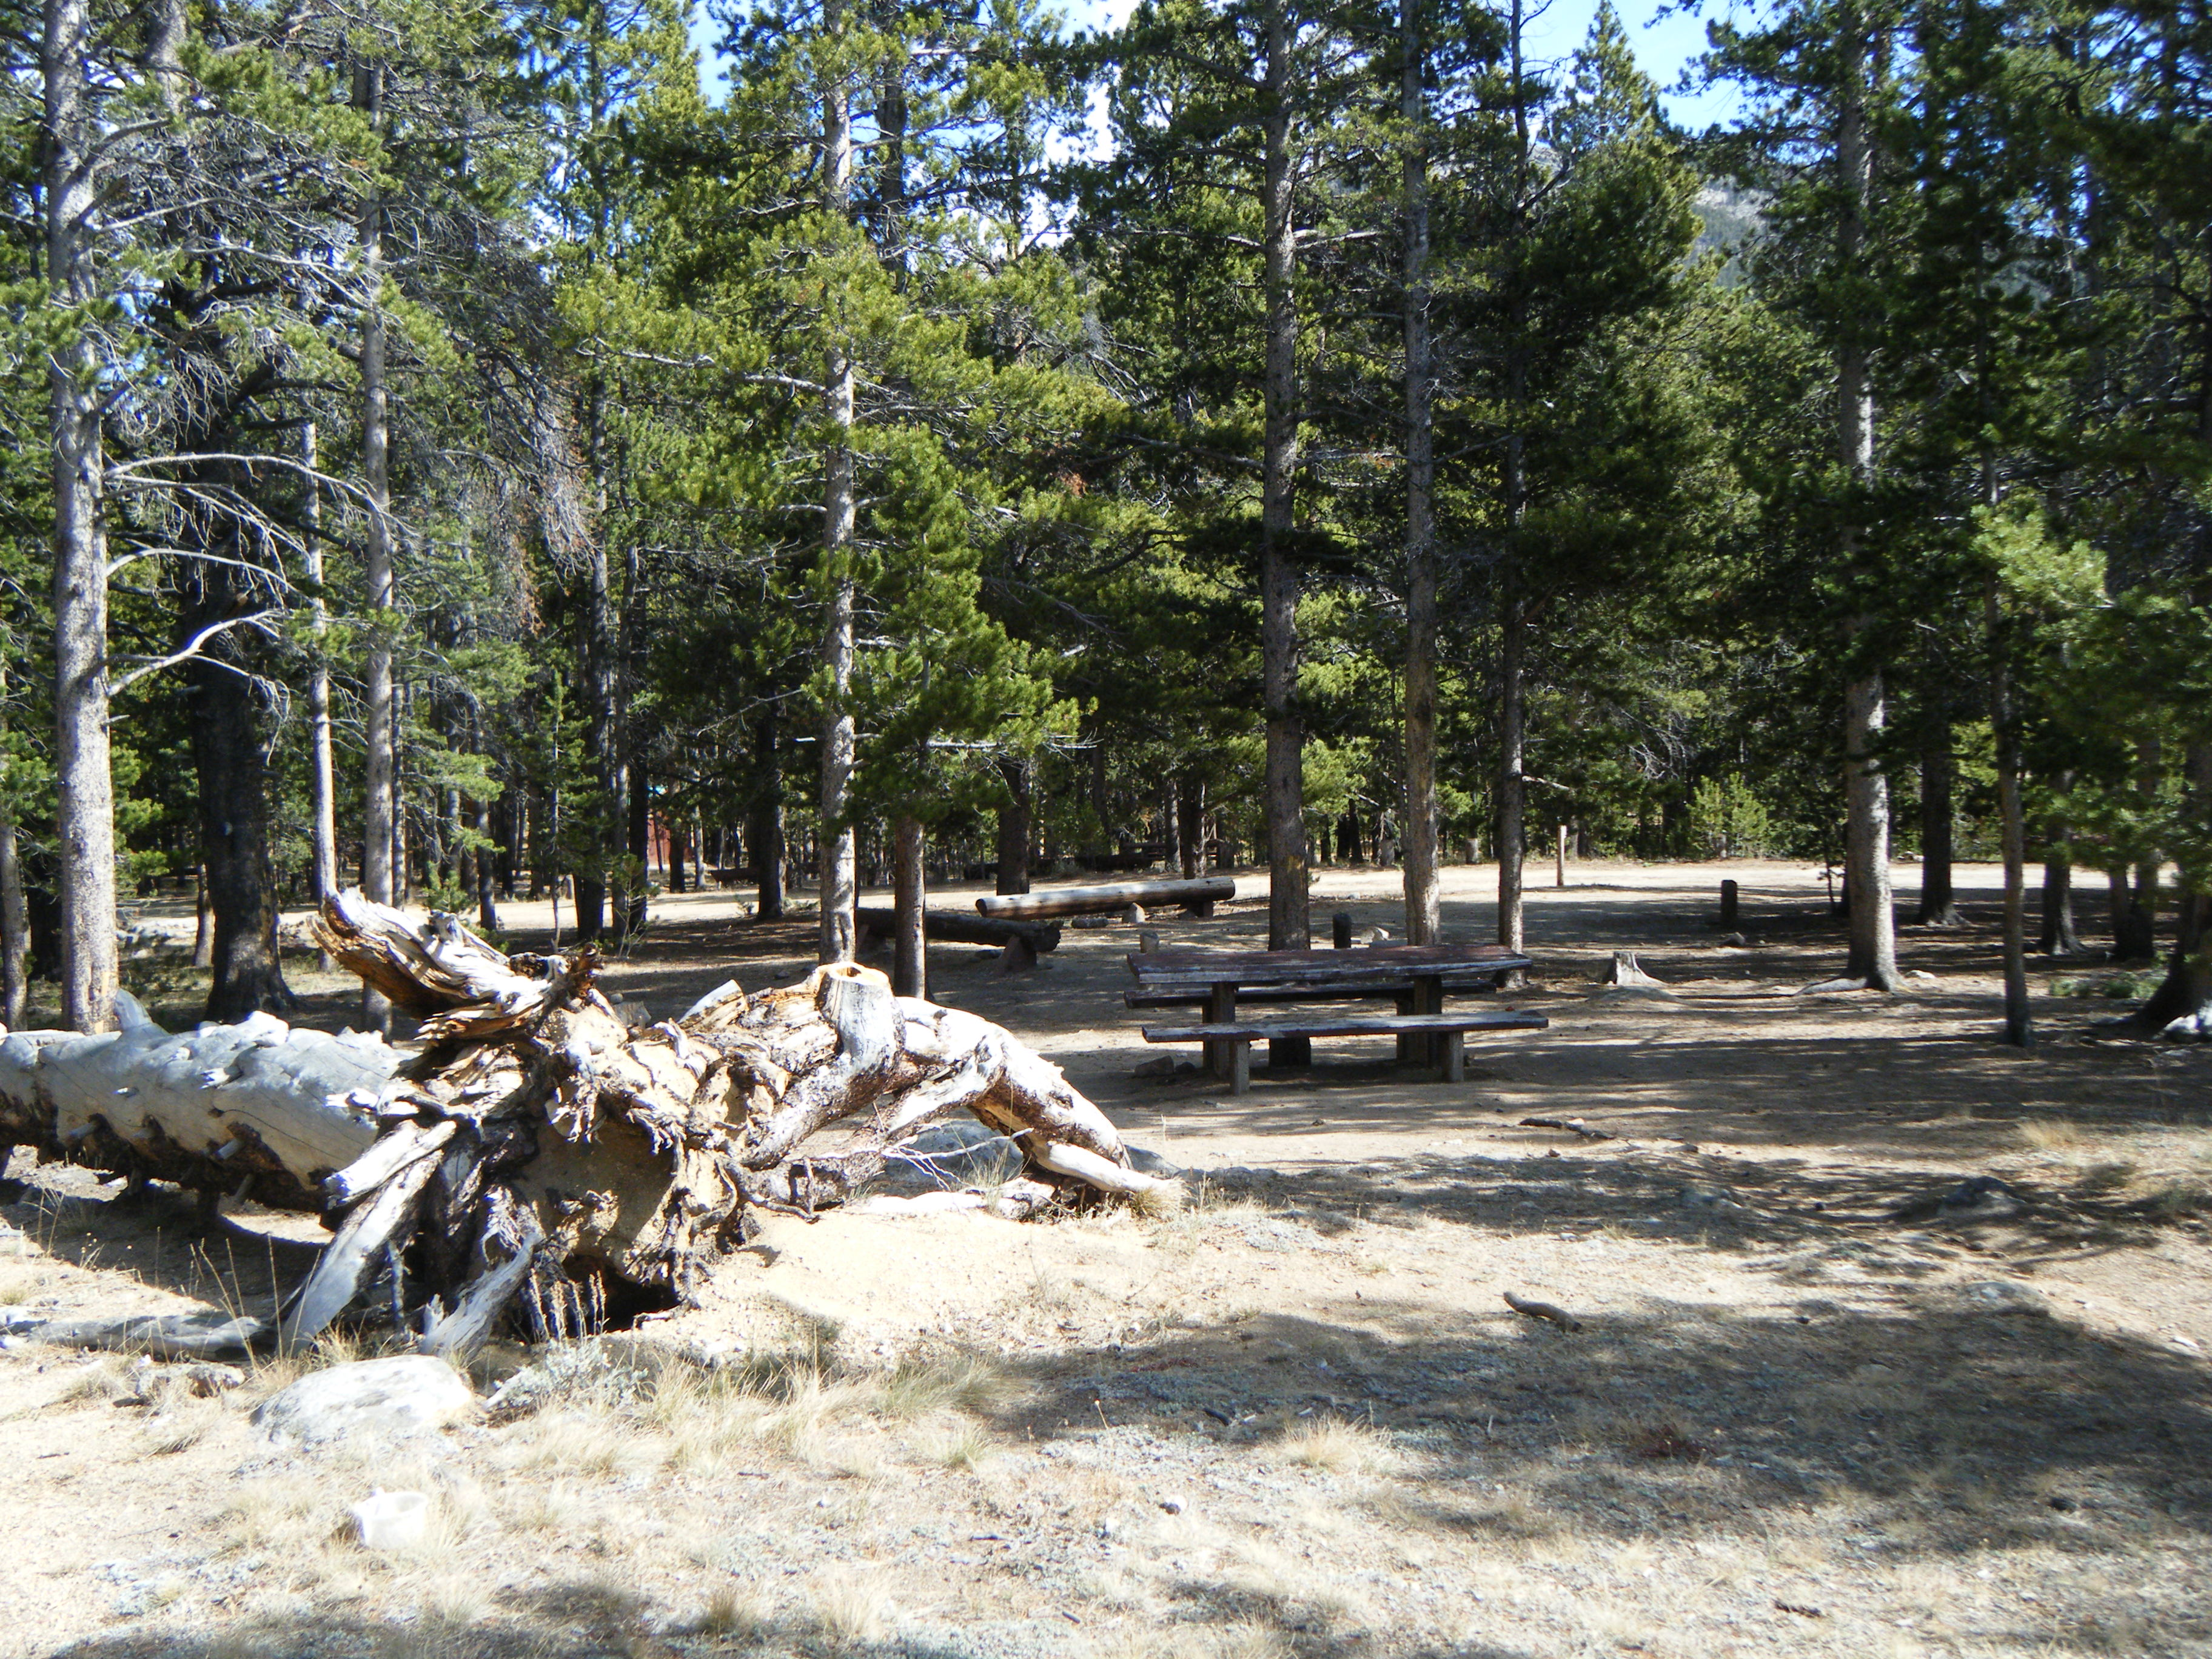 Photograph of Dickinson Creek Campground